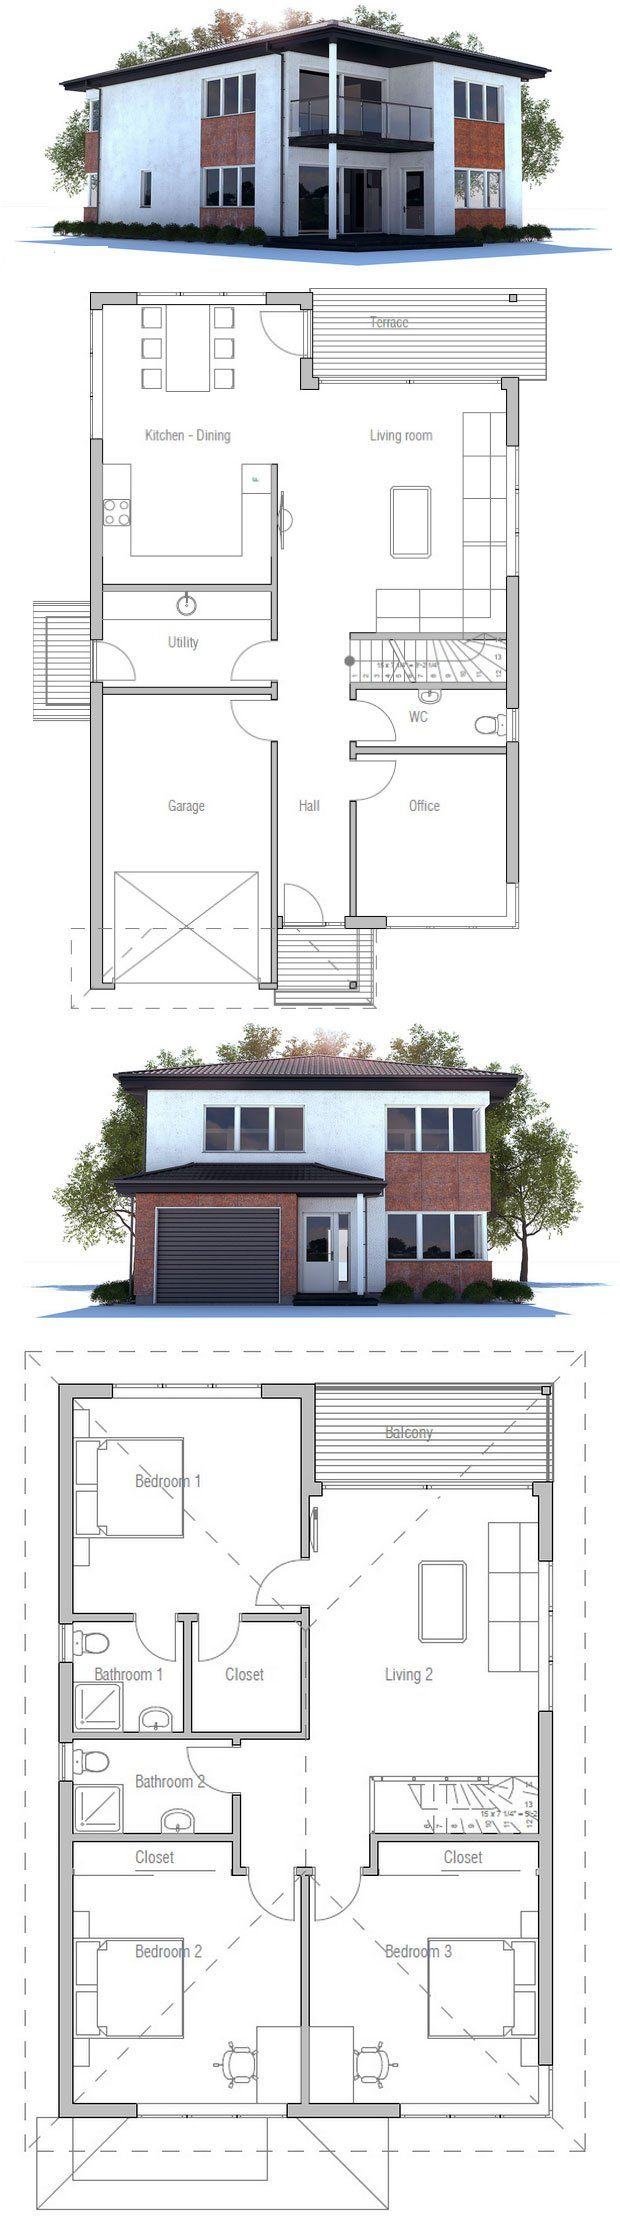 Narrow lot modern house plan floor plan from concepthome for Minimalist narrow house plans